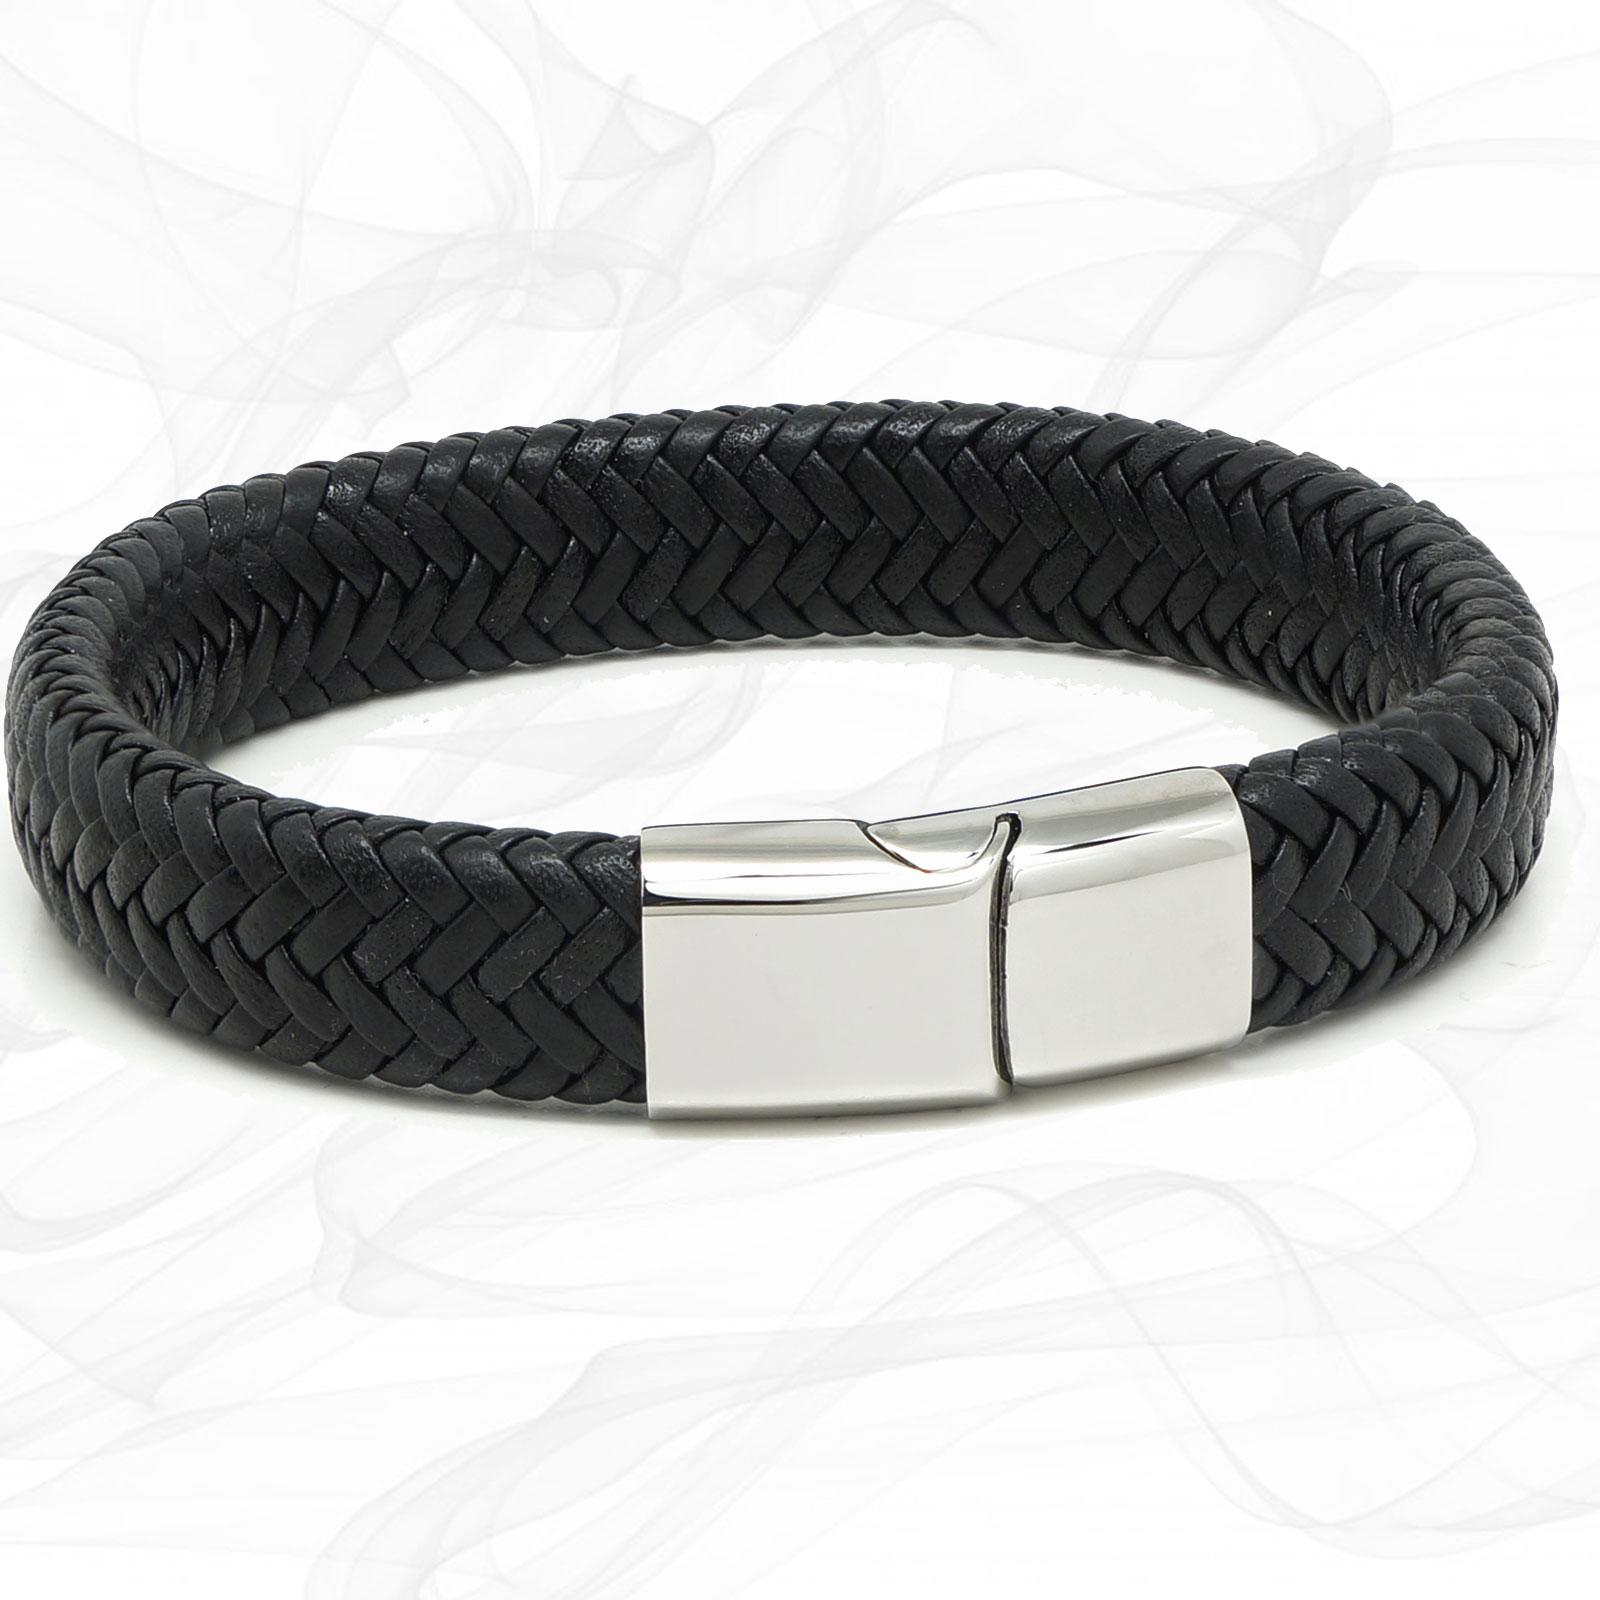 Chunky Black Super Soft Premium Leather Bracelet with a Silver Sliding Magnetic Clasp.